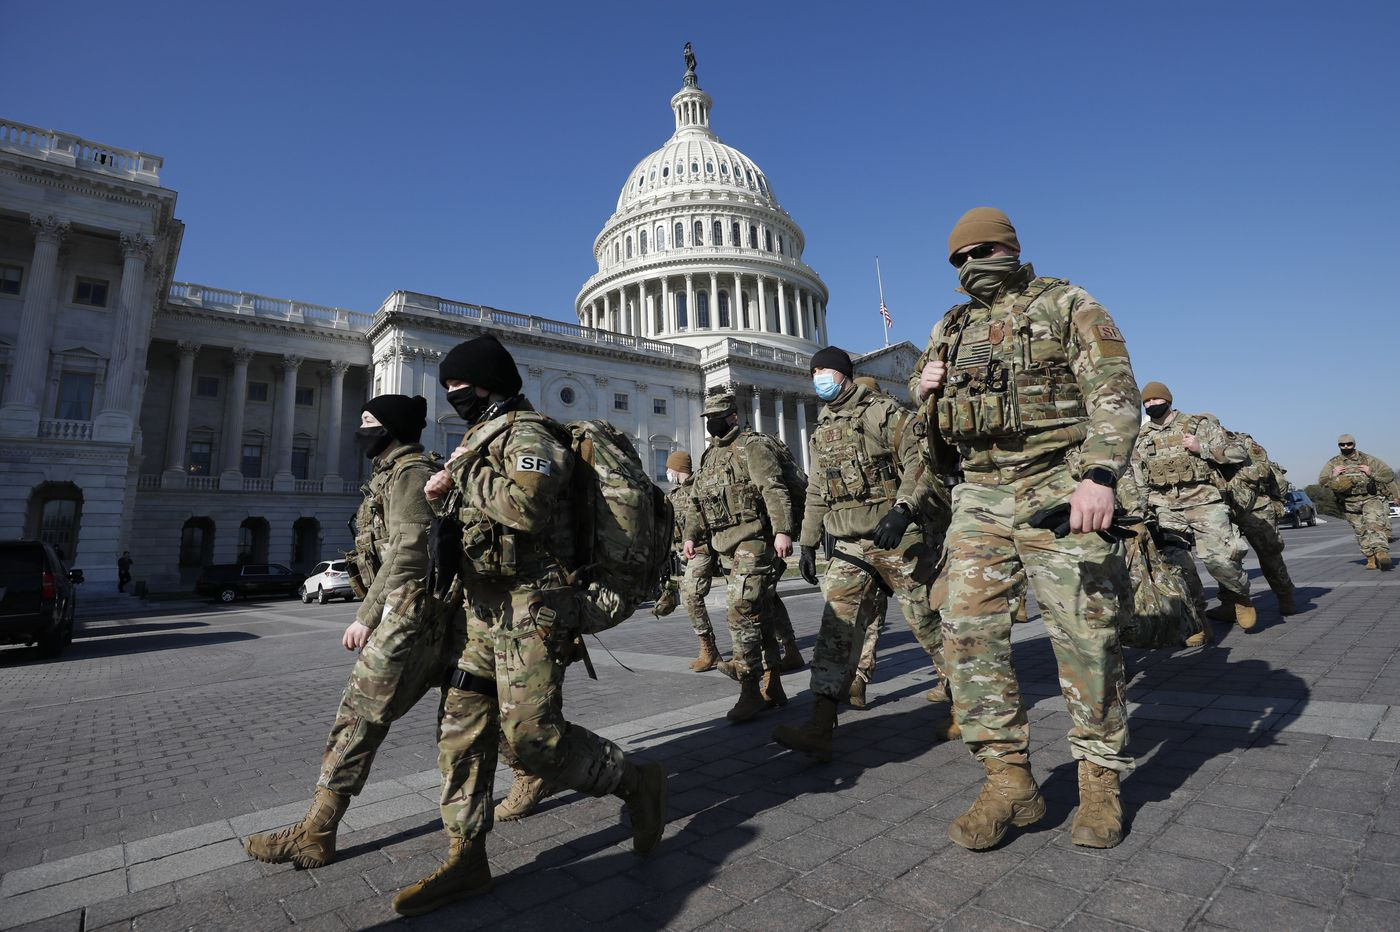 National Guard troops are flooding in as Washington locks down a week before the inauguration